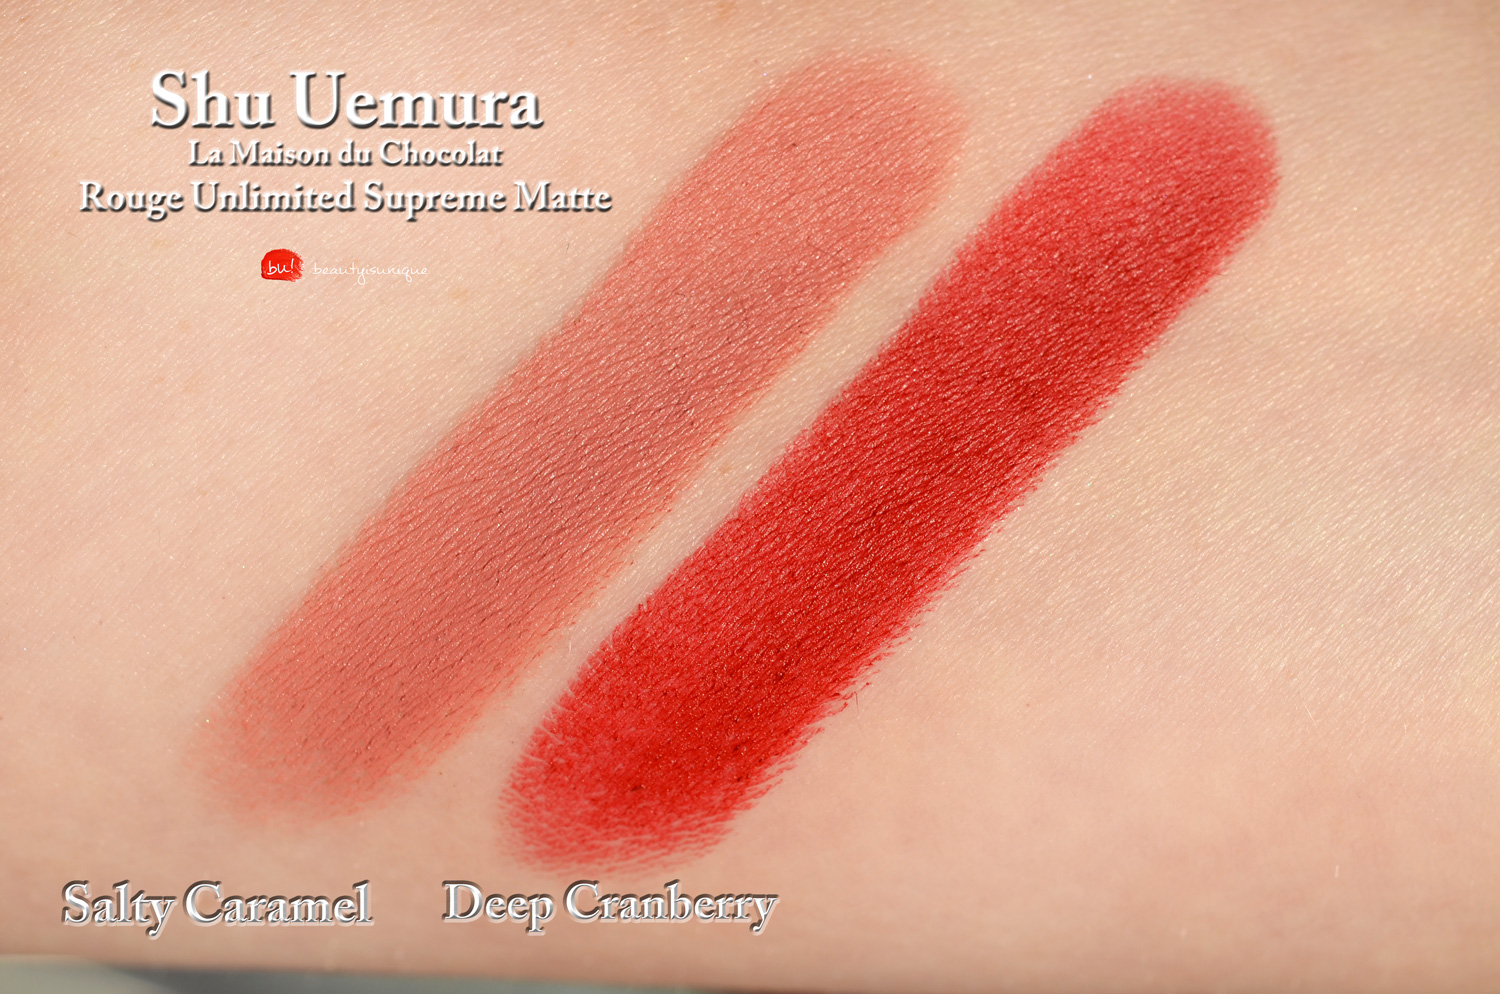 shu-uemura-salty-caramel-rouge-unlimited-supreme-matte-swatches